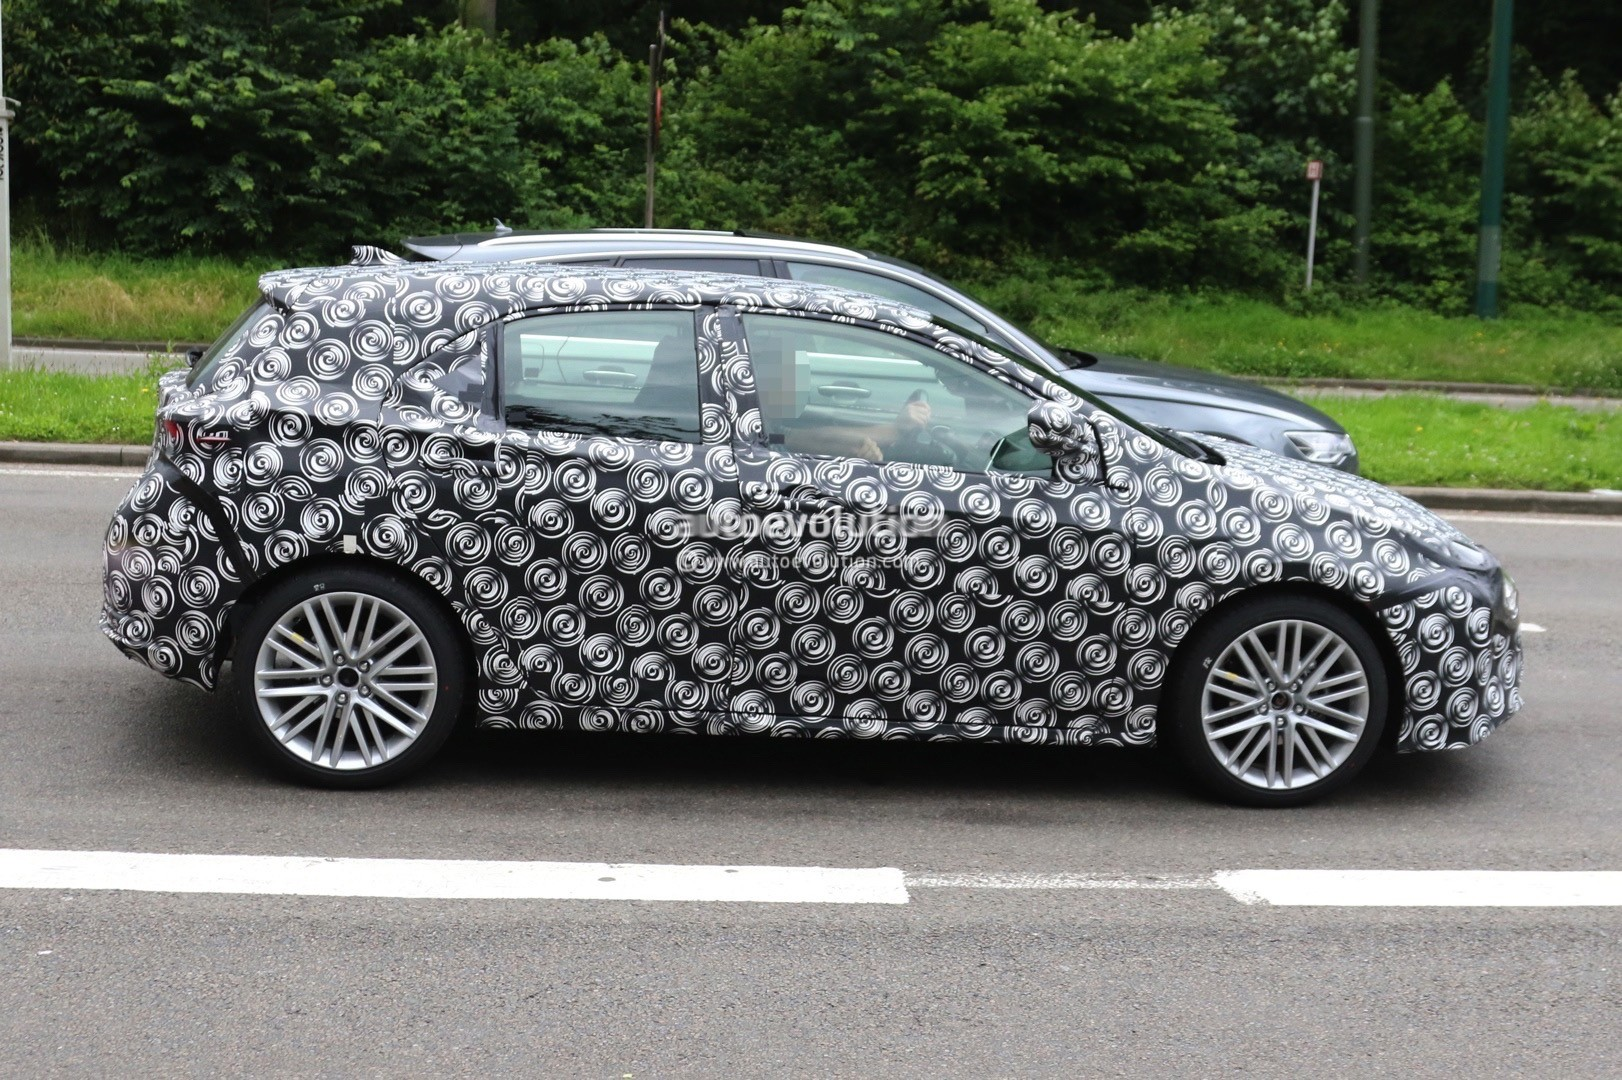 2019 Toyota Corolla Hatchback Spied With Production Body Shell ...